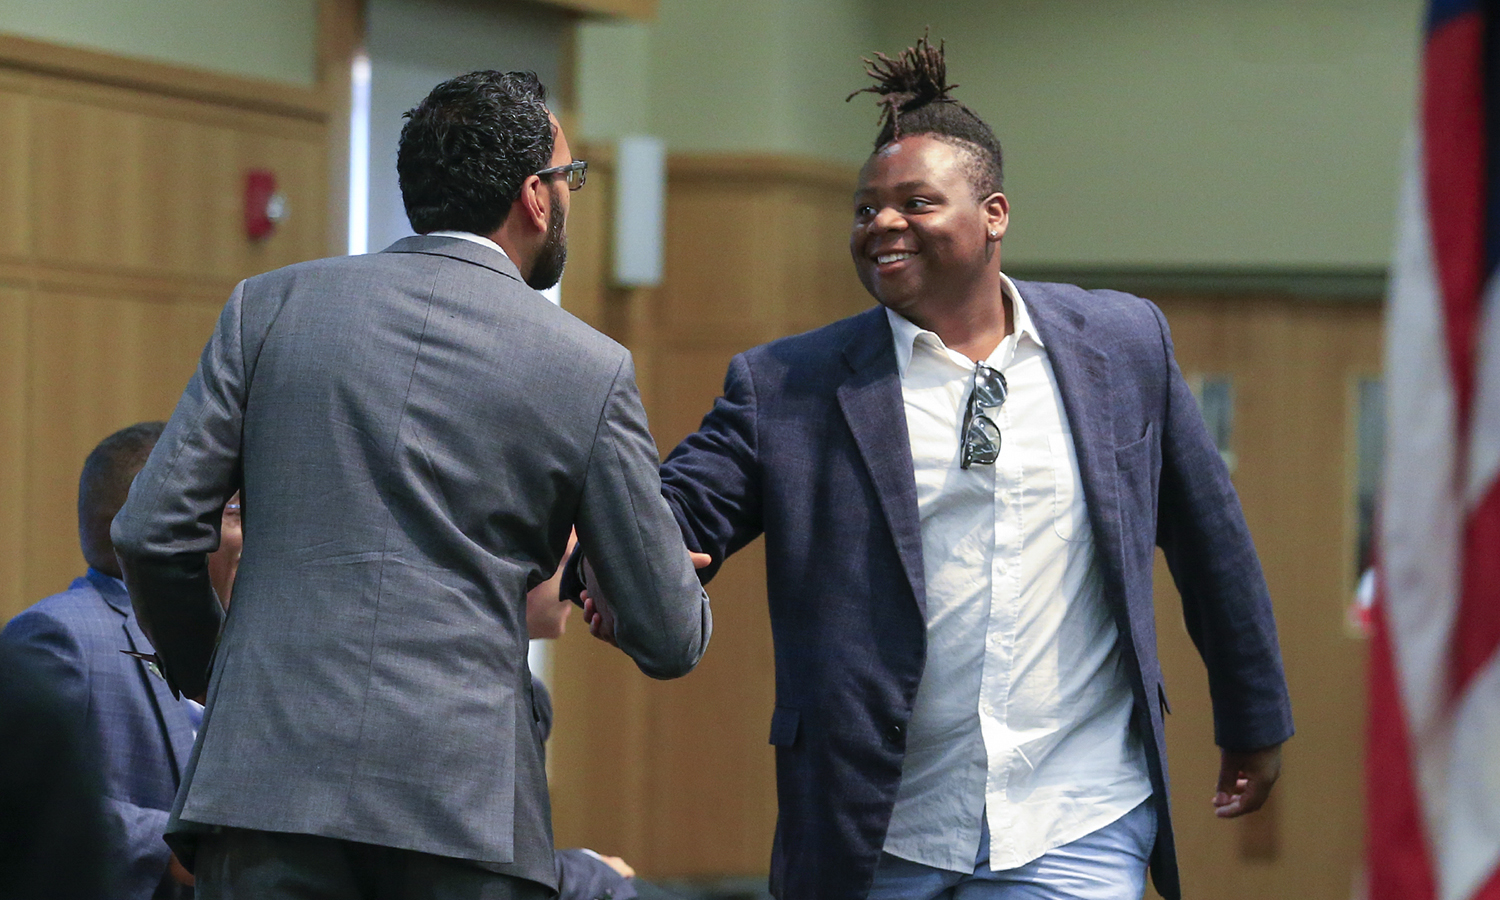 Mudia Onaiwu '22 shakes hands with Dean of Hobart College Khuram Hussain.